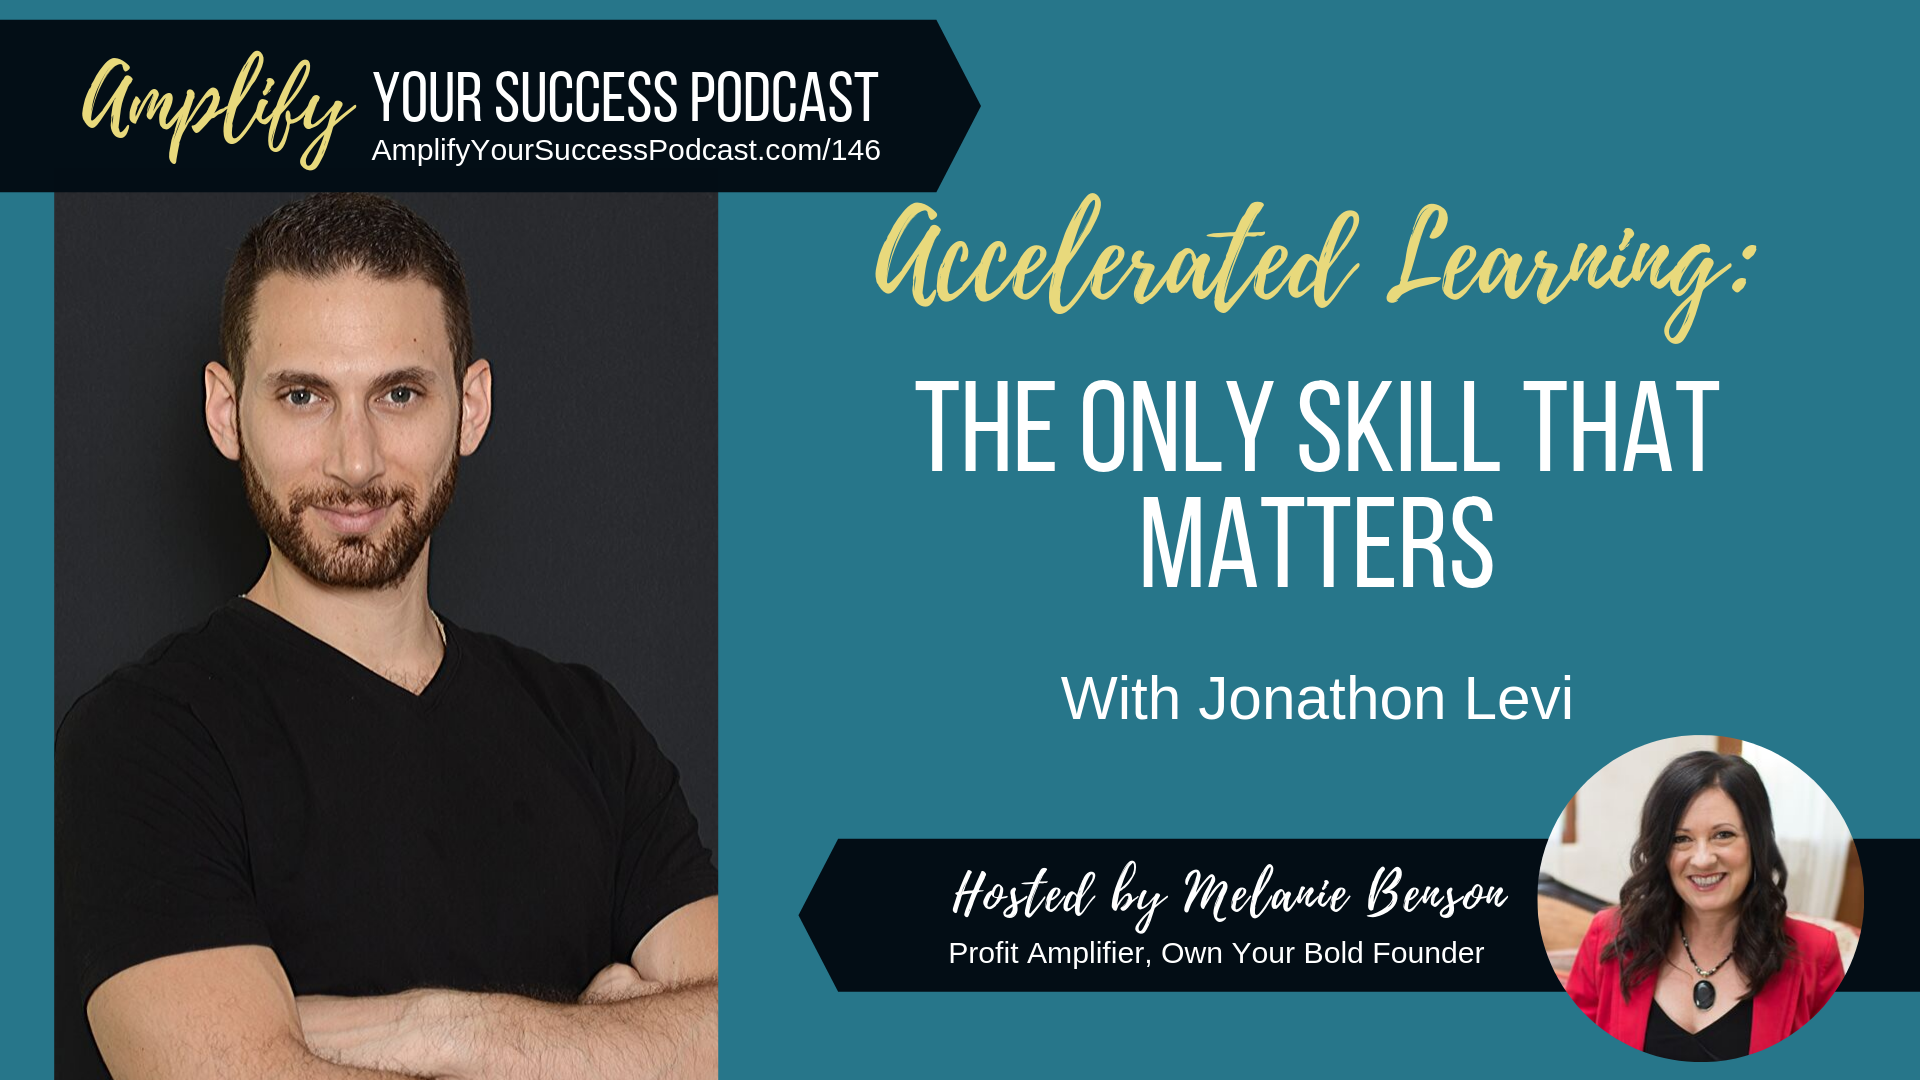 Accelerated Learning: The Only Skill That Matters with Jonathon Levi